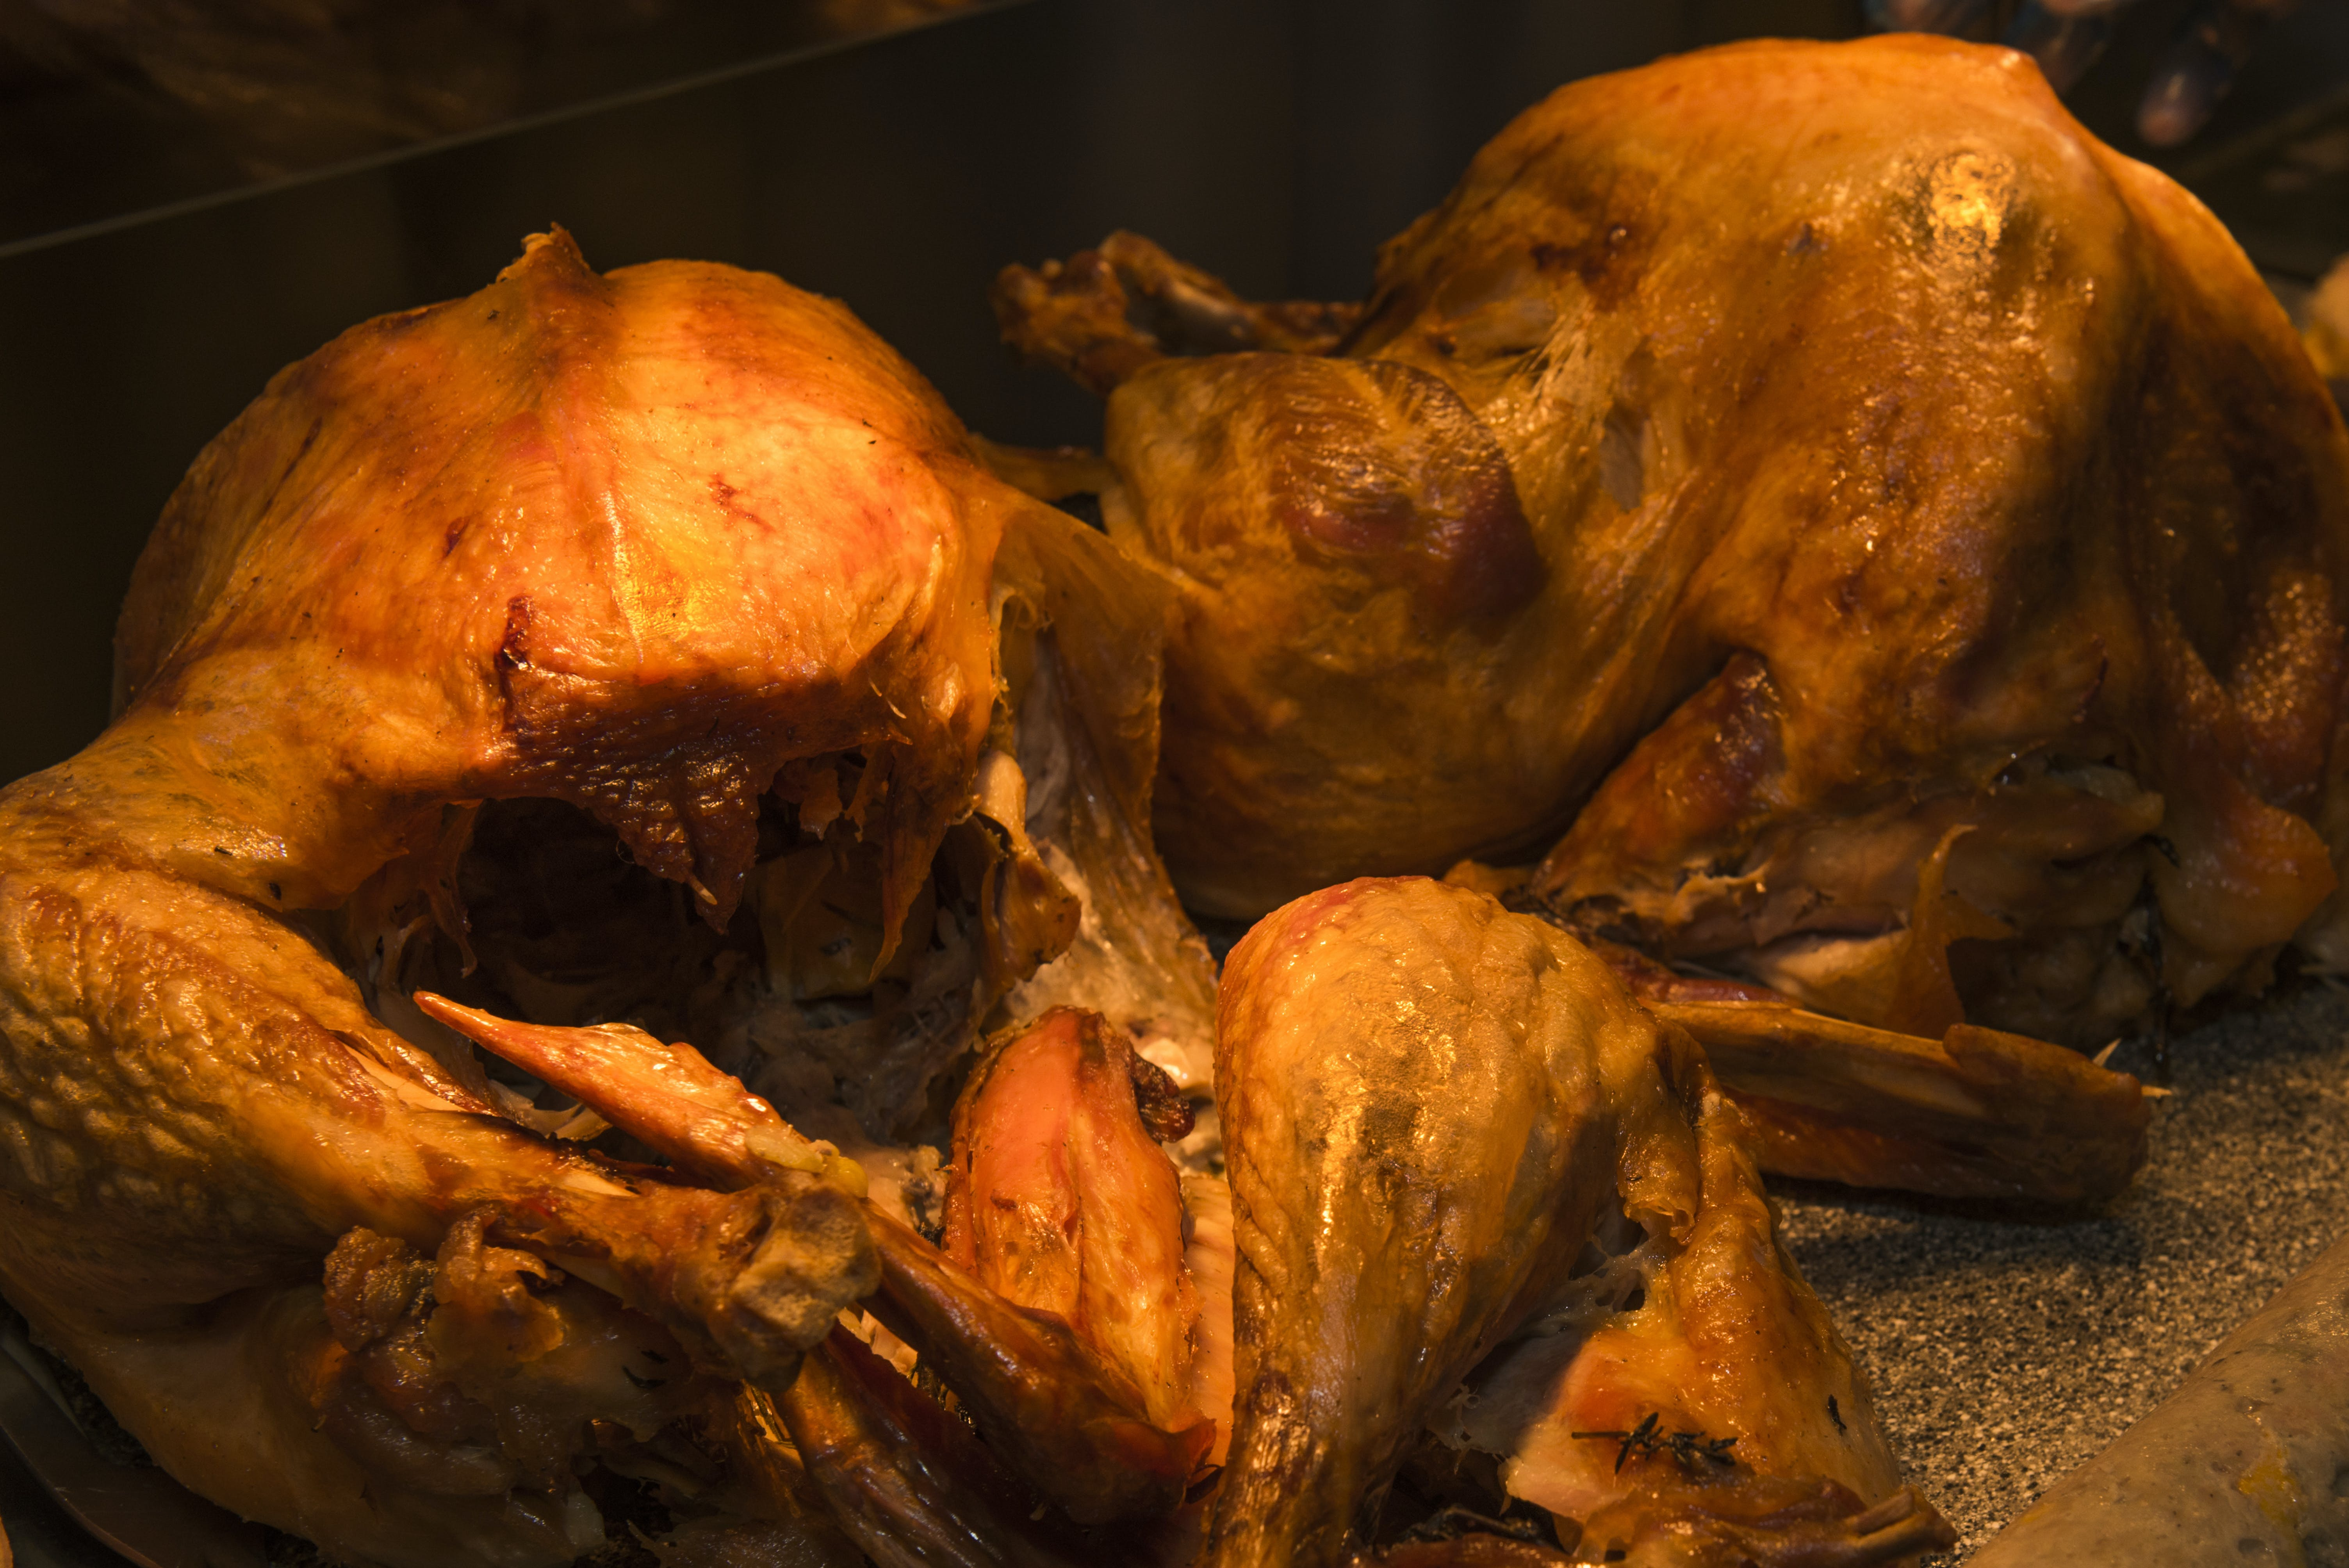 Free stock photo of cooked turkey, oven baked turkey, poultry, Thanksgiving